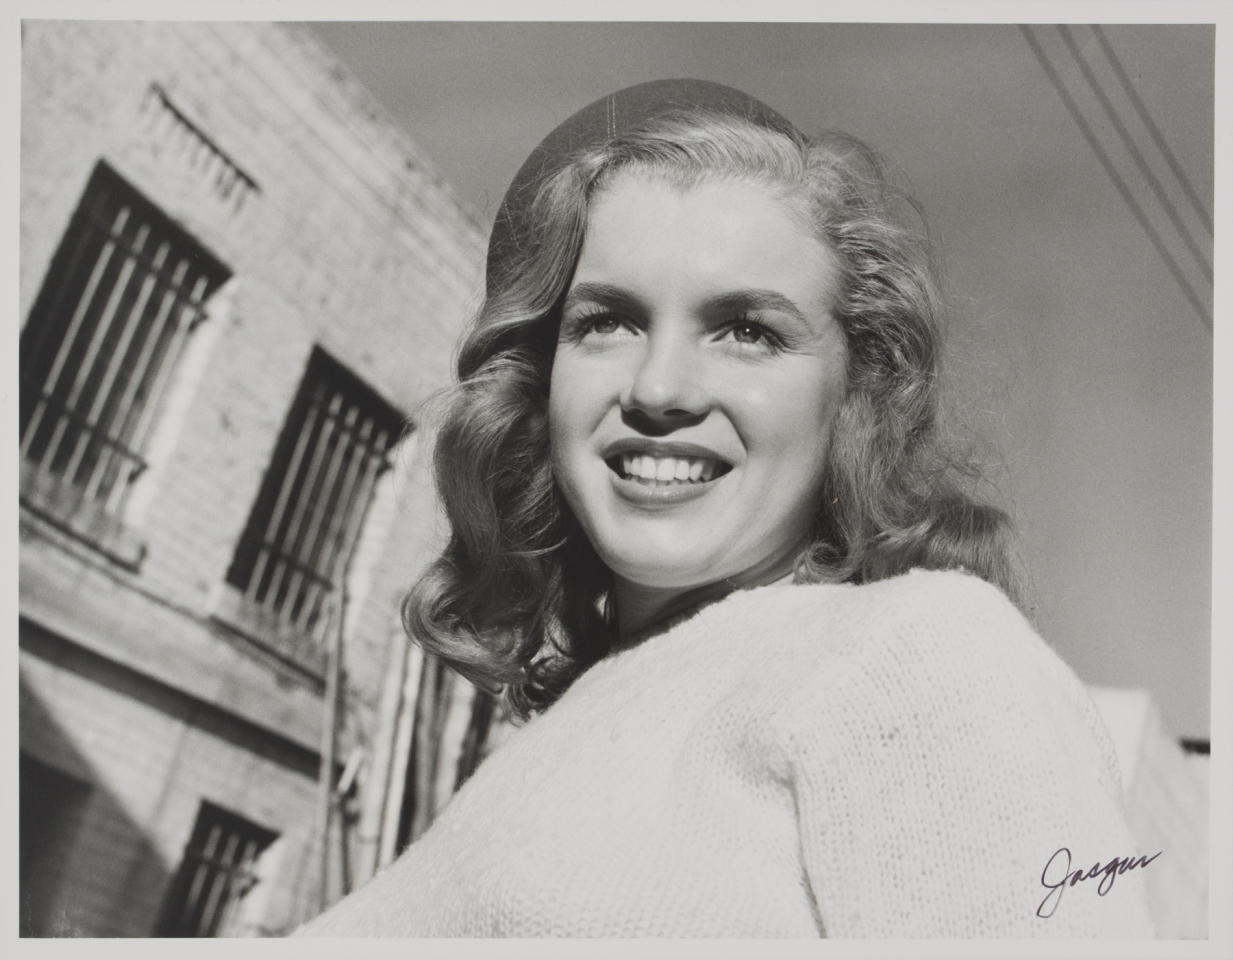 In this 1946 image taken by photographer Joseph Jasgur and released by Julien's Auctions, a photo of Norma Jean Dougherty, who eventually changed her name to Marilyn Monroe, is shown. A bankruptcy judge in Florida ruled earlier this week that photos taken of Monroe will be sold at auction to settle the debts of the photographer. Jasgur's photos, negatives and image copyrights will be sold in December by Julien's Auctions. (AP Photo/Julien's Auctions, Joseph Jasgur)